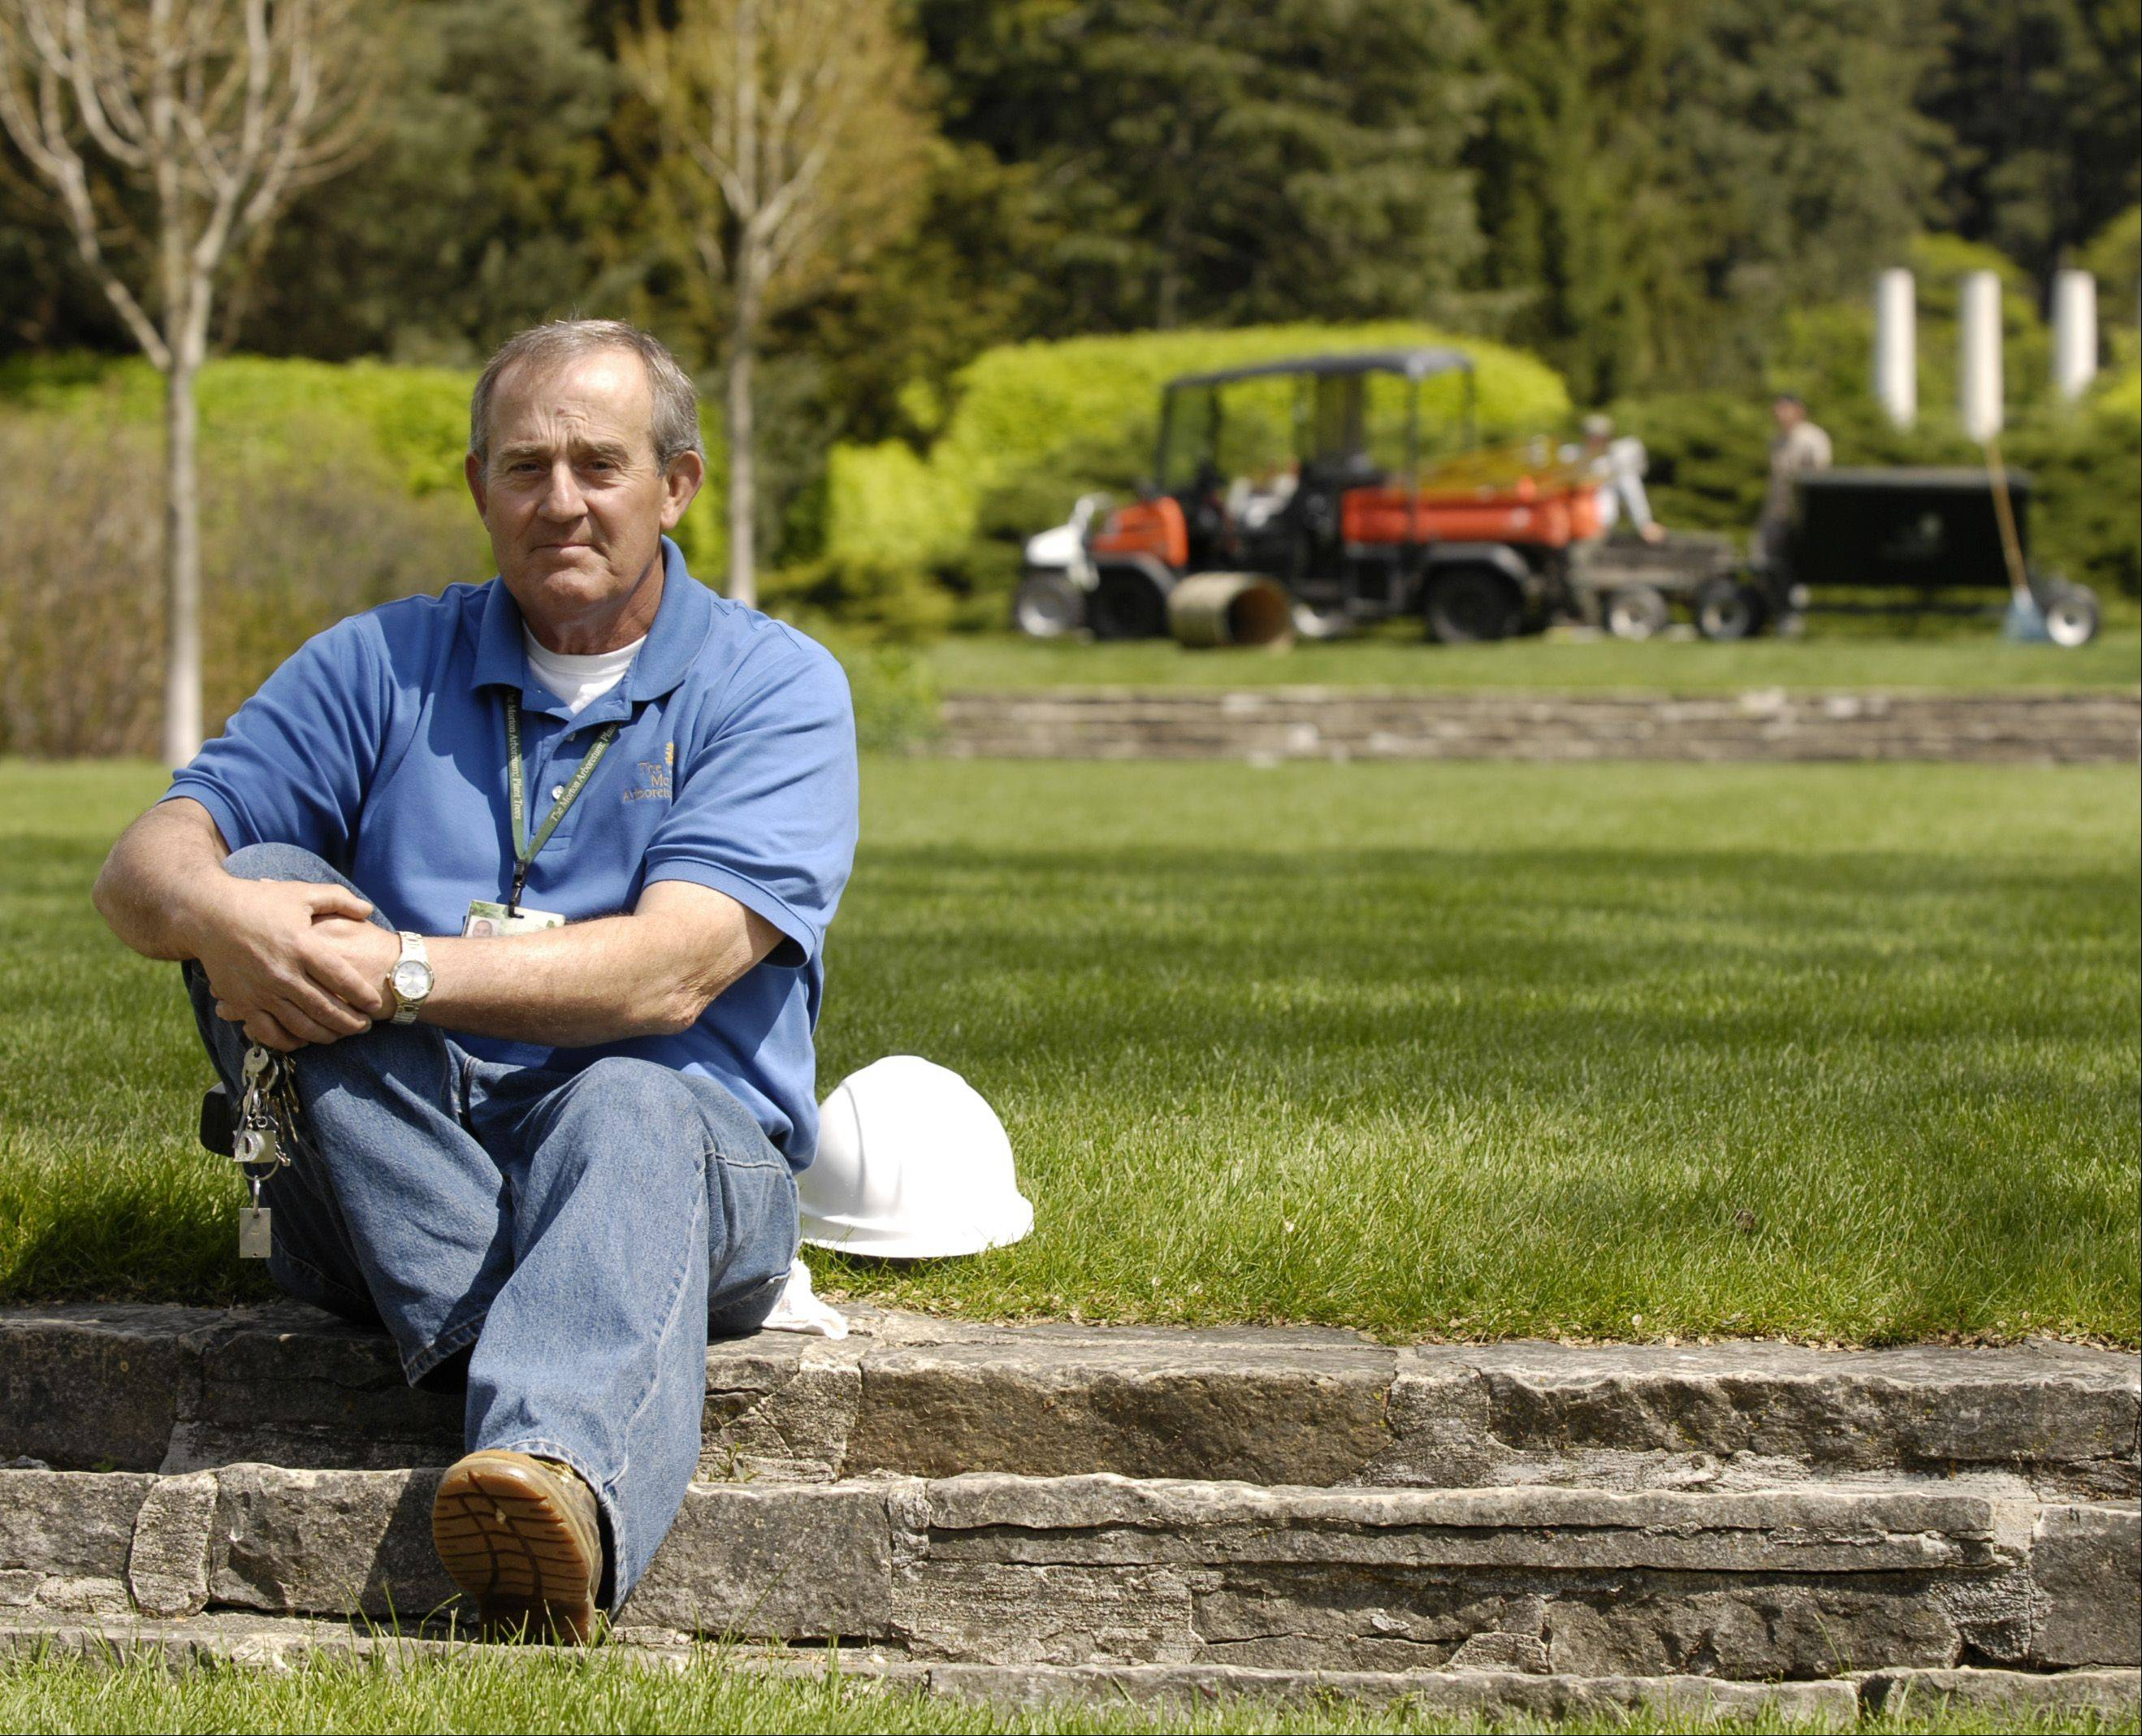 The changing seasons keep Doug Monroe busy in his job as a construction groundsman at the Morton Arboretum in Lisle. Now 64, he started working at the outdoor museum when he was 14 and has lived on the grounds nearly all his life.